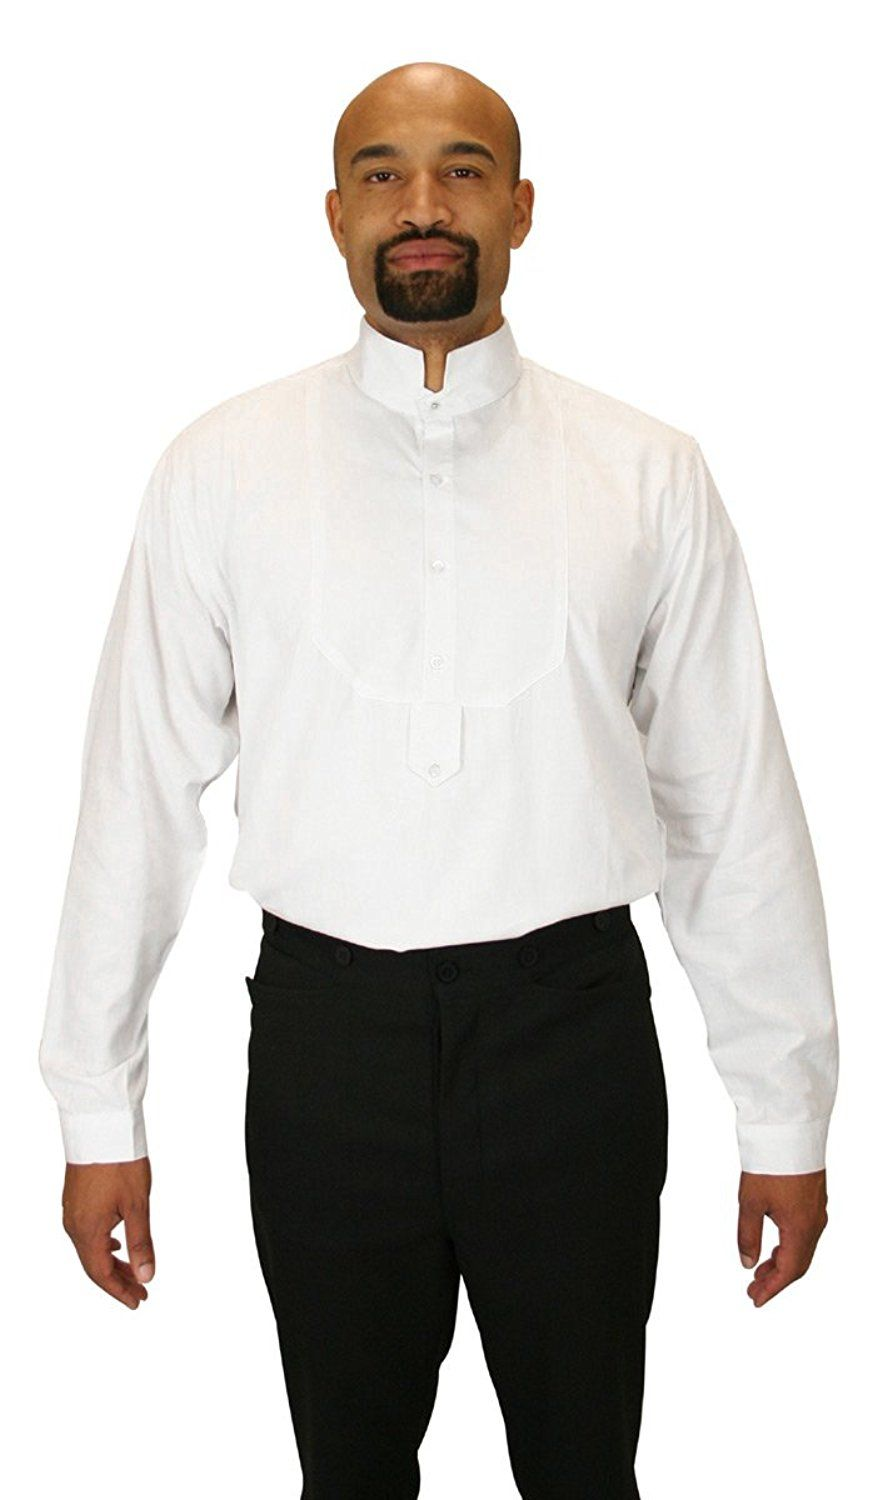 bb0c057fdbe4 Victorian Men's Shirts- Wingtip, Gambler, Bib, Collarless Historical  Emporium Mens Victorian Collar Dress Shirt $59.95 AT vintagedancer.com